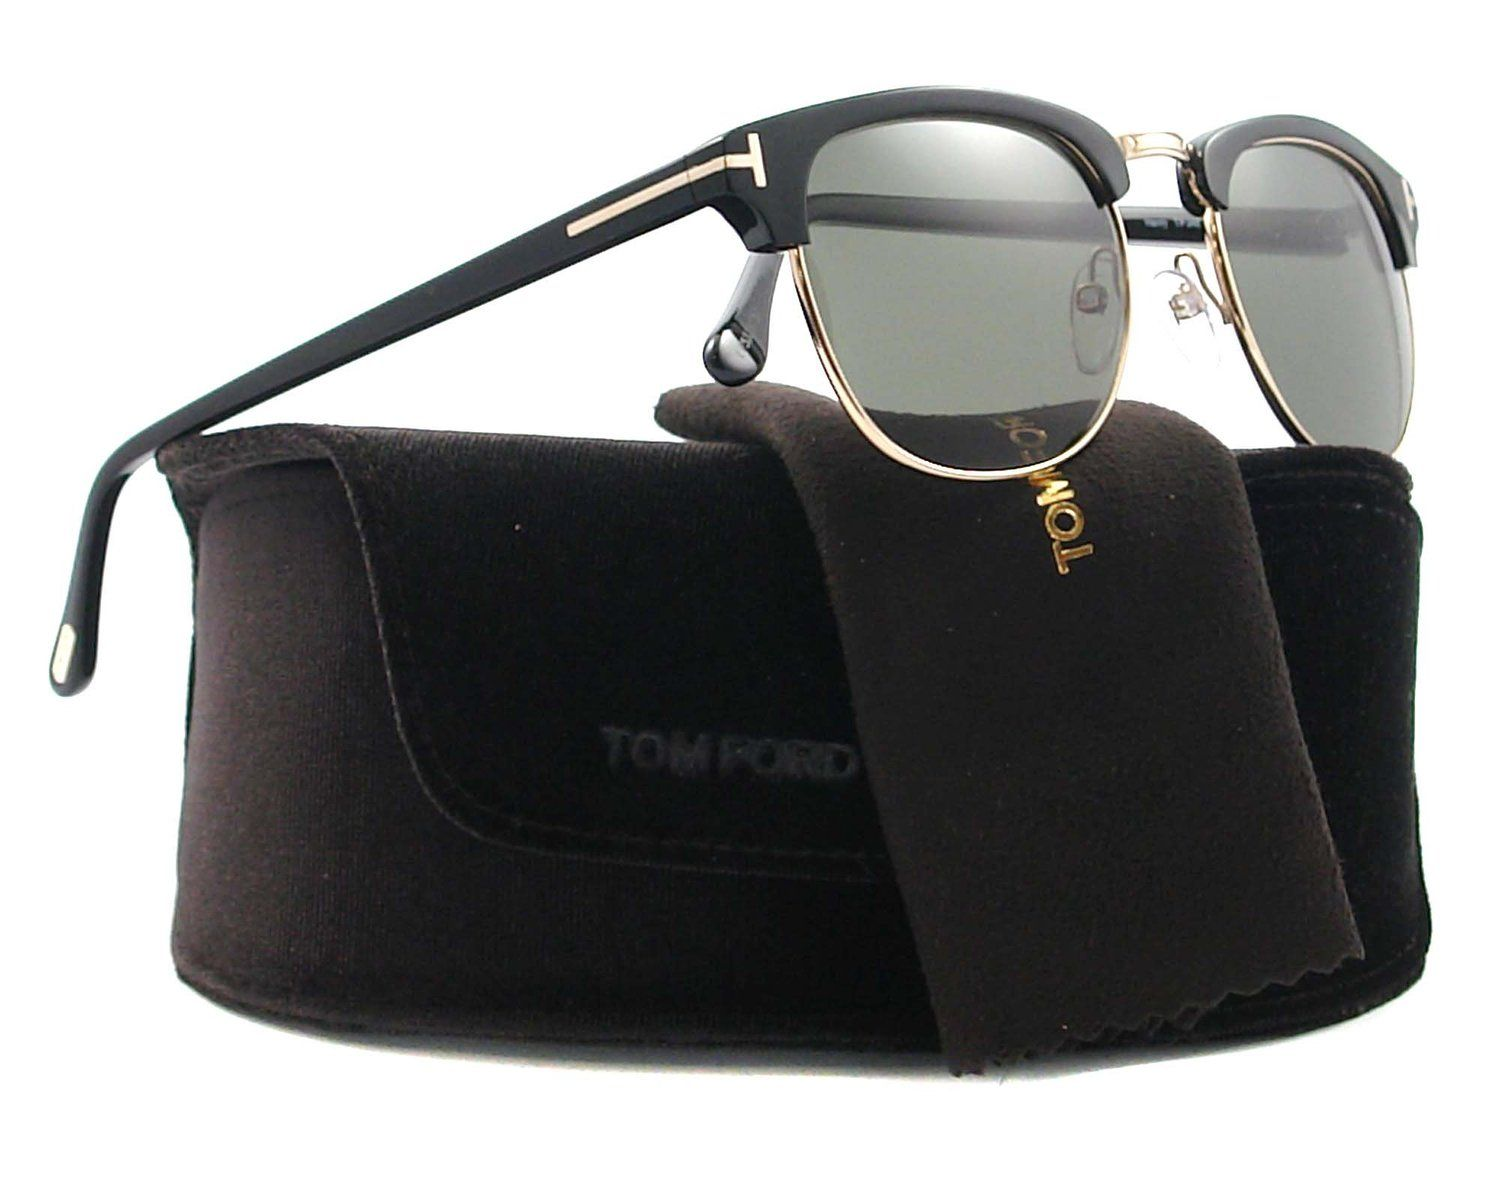 0df3cdc9d71 Amazon.com  Tom Ford Sunglasses - Henry   Frame  Shiny Black with Rose Gold  Lens  Grey Gradient  Tom Ford  Shoes